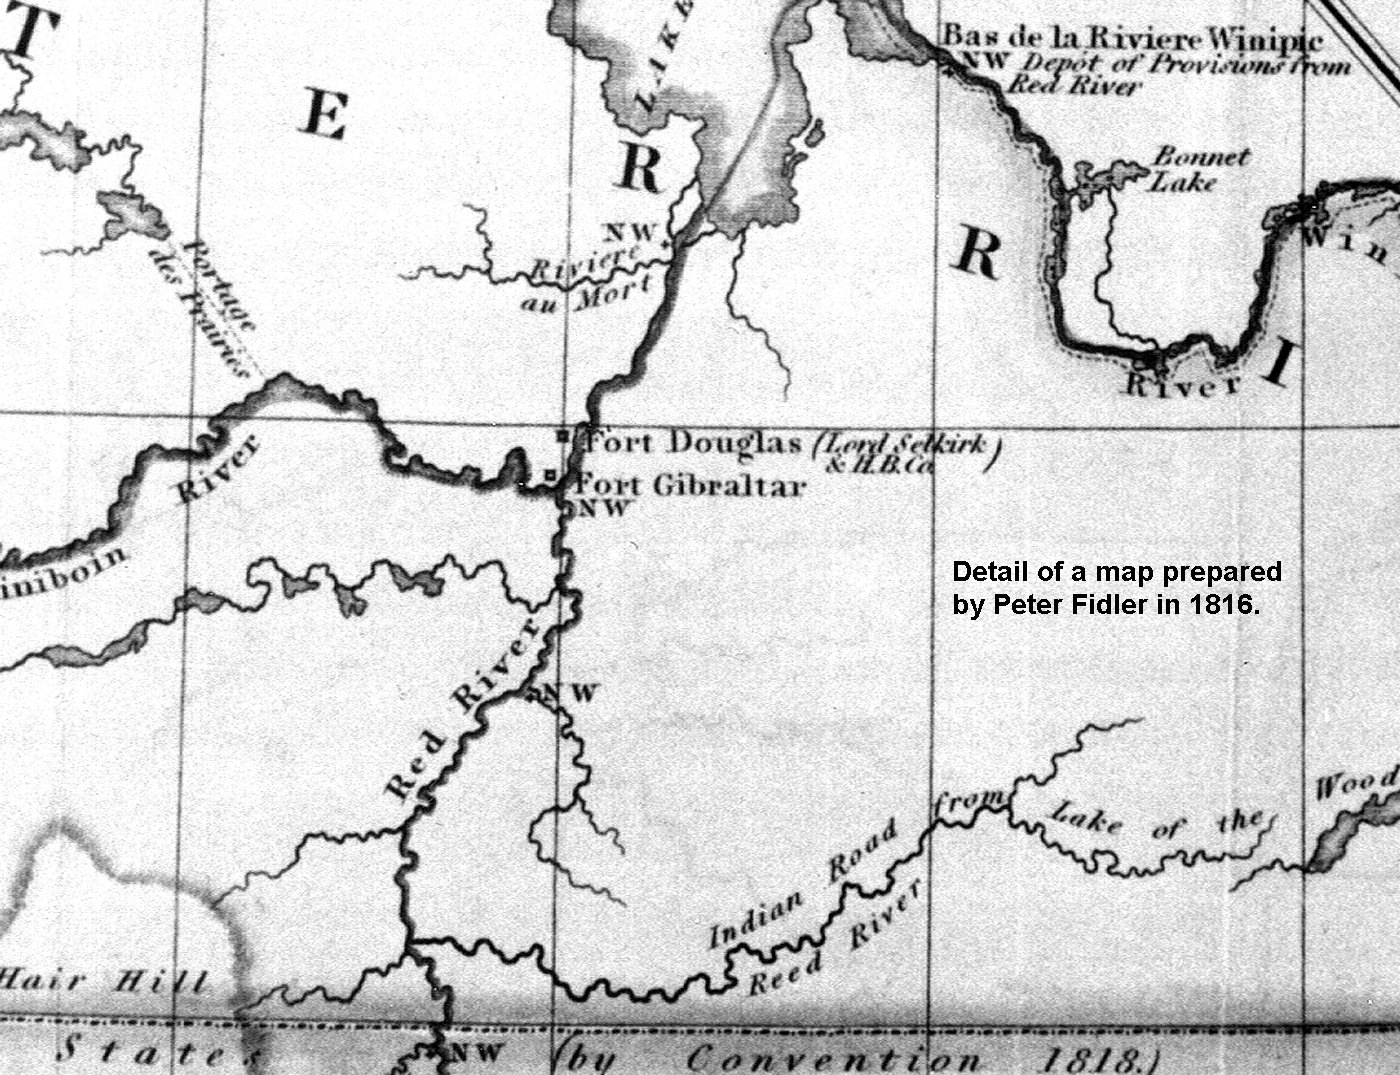 Nw Colorado Map.1816 Map 018 A Nw Co Forts In Red River Basin Red River North Heritage